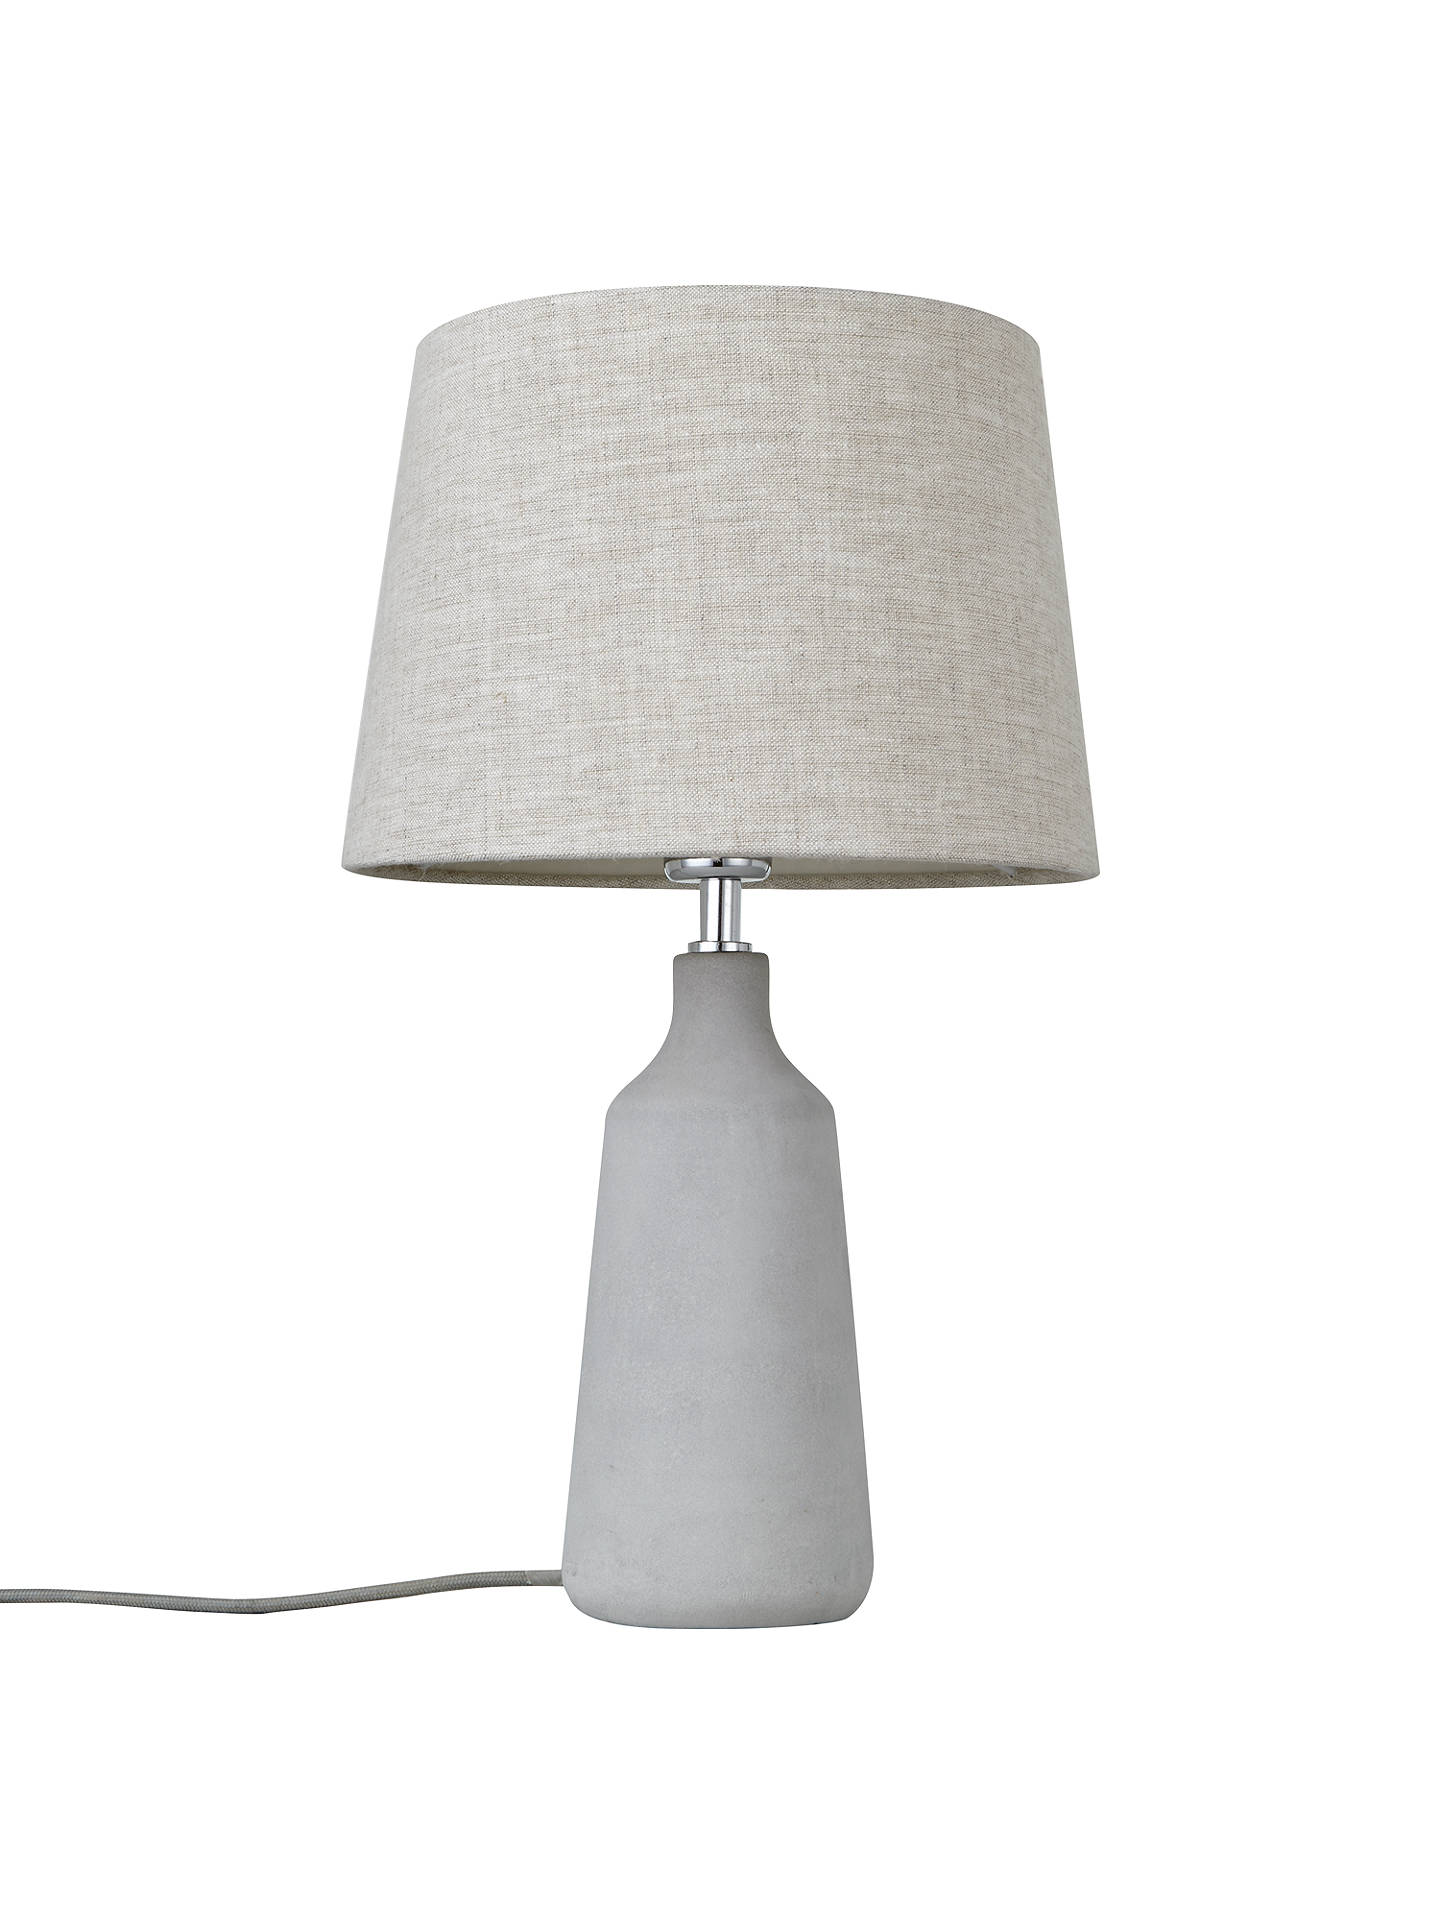 BuyJohn Lewis & Partners Linney Concrete Table Lamp Online at johnlewis.com